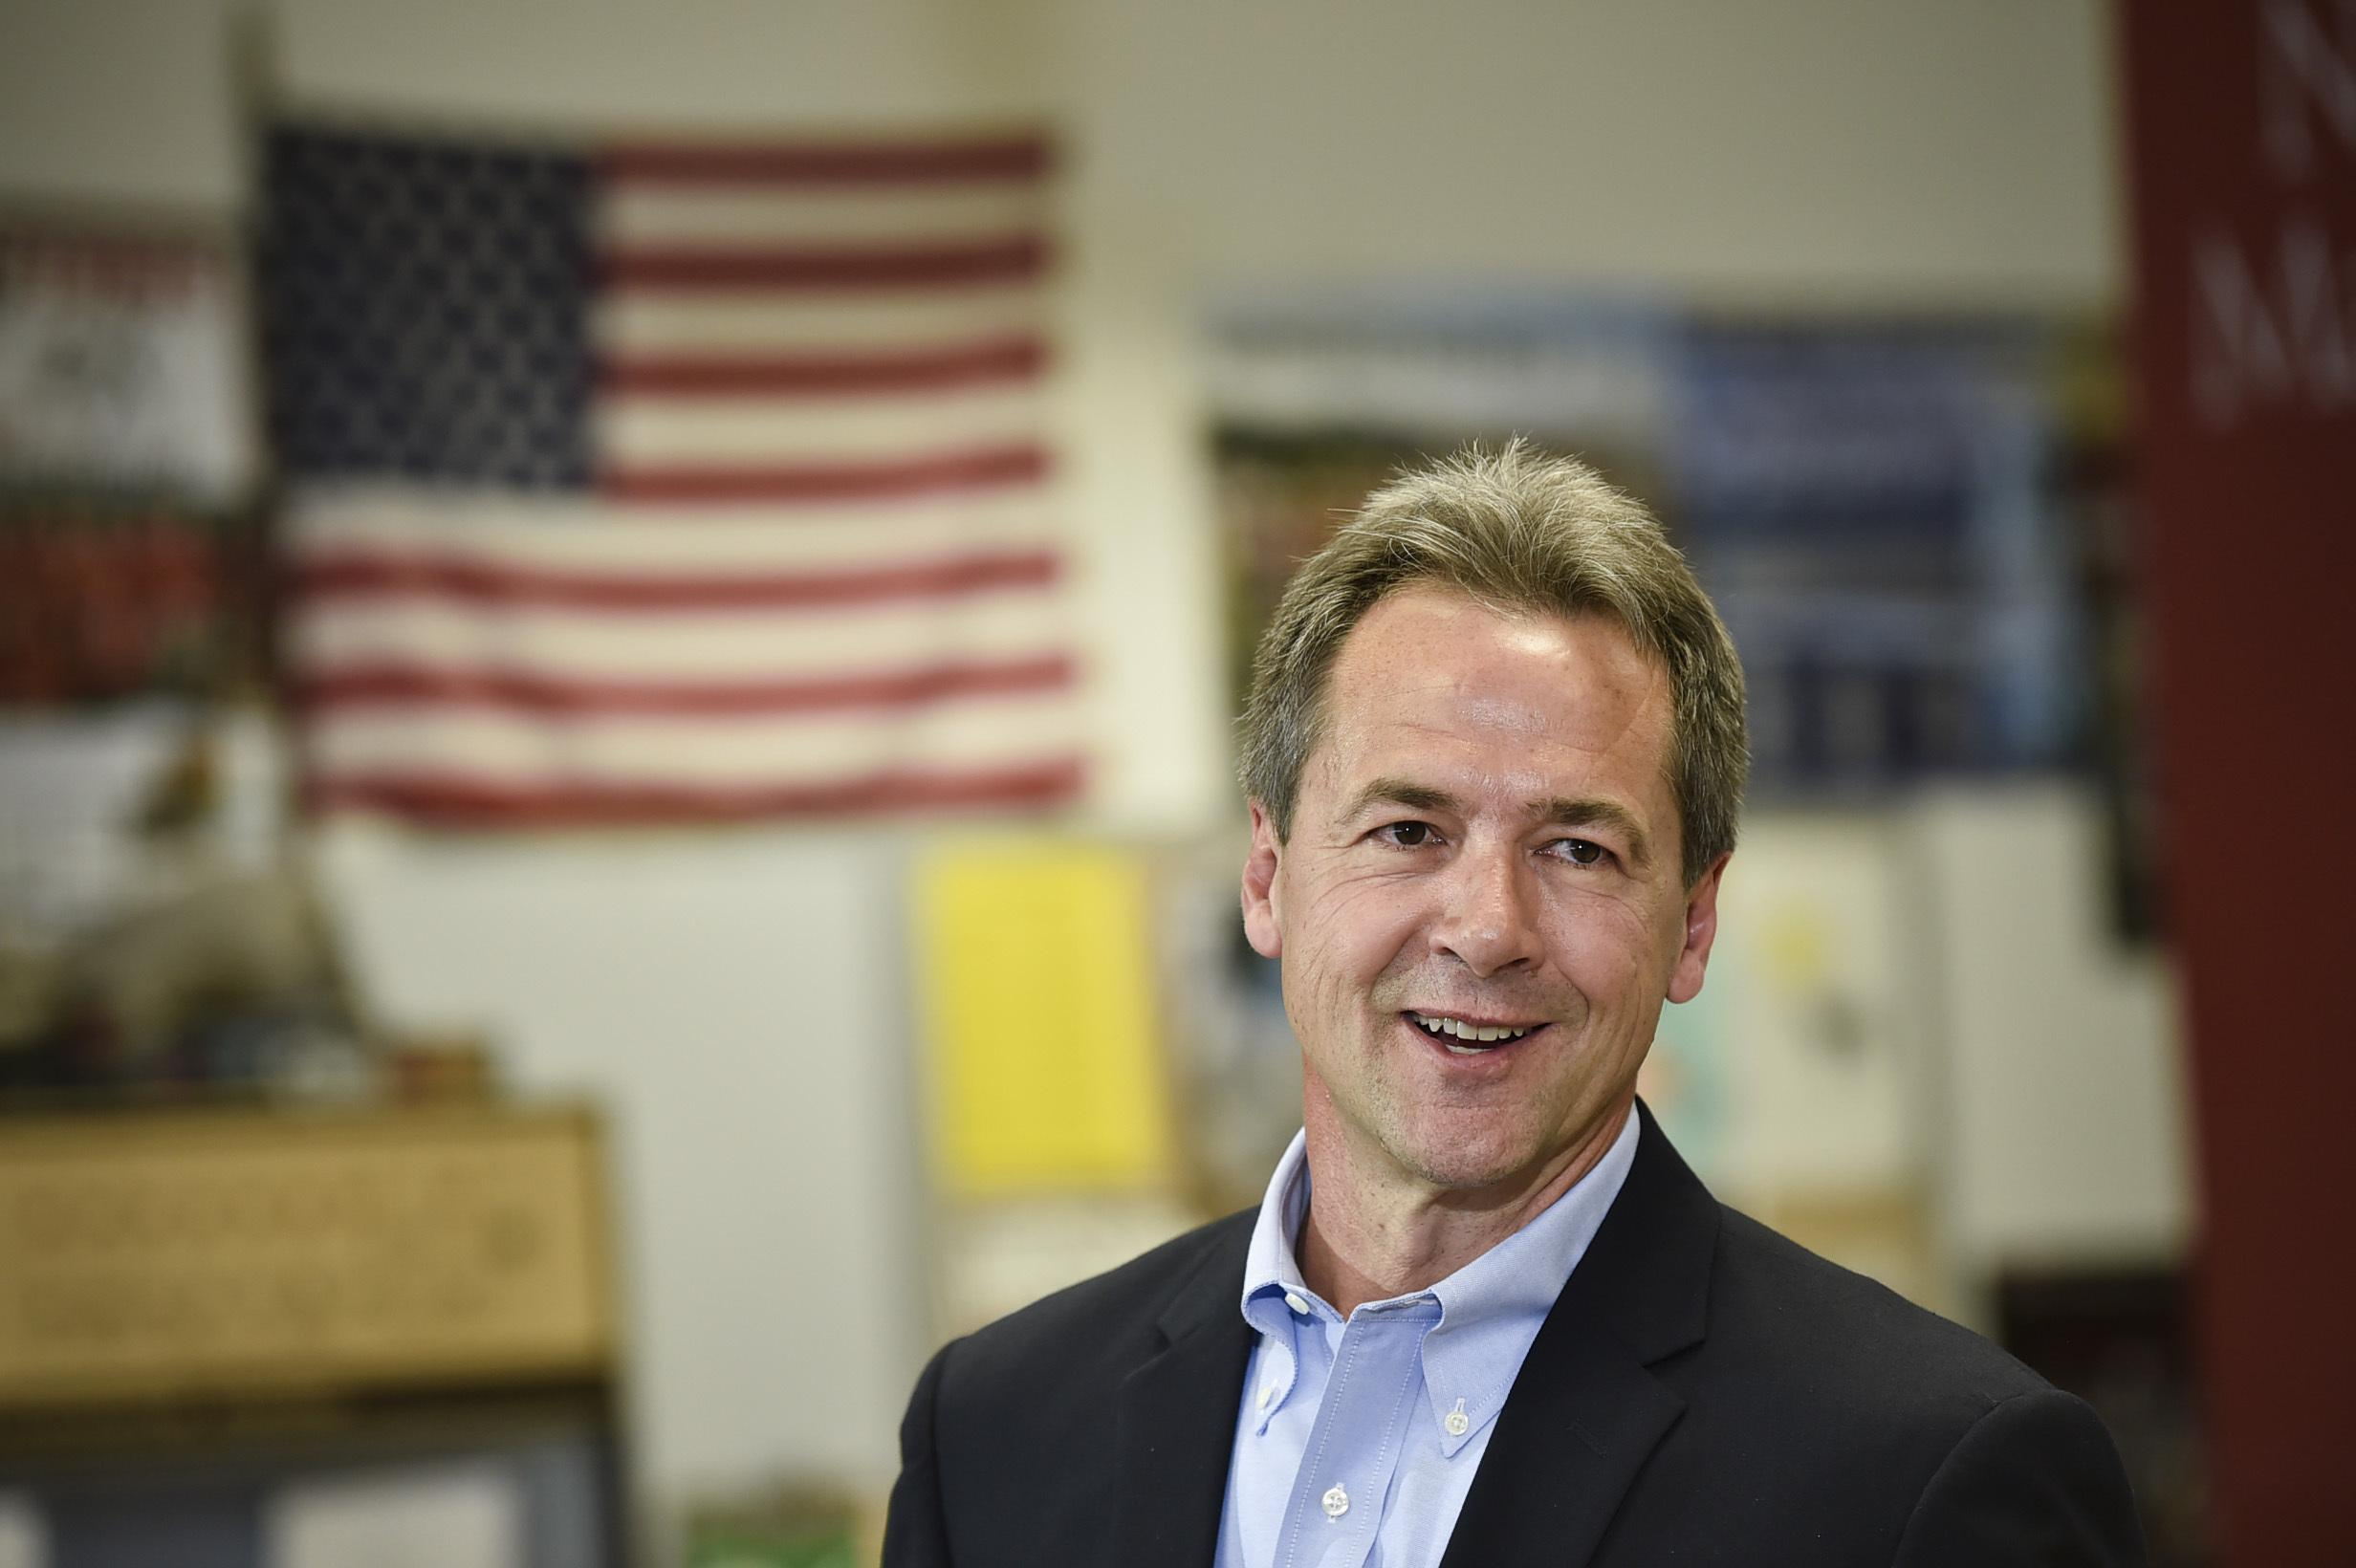 Mont. Gov. Steve Bullock said he wouldn't pardon Trump if he's charged after leaving office